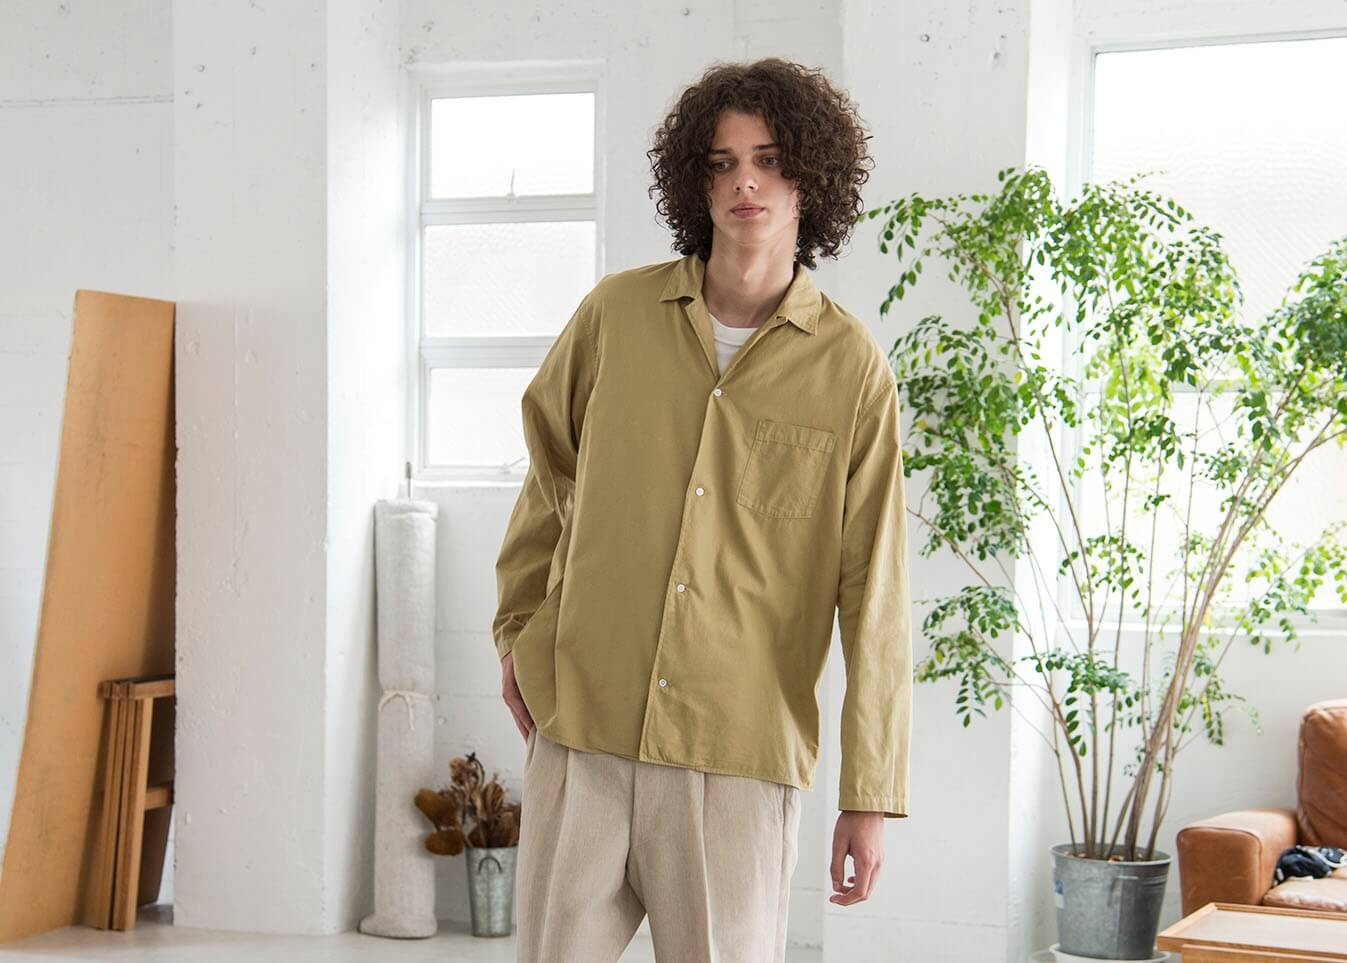 bunt 18ss look - L/S open collar shirt